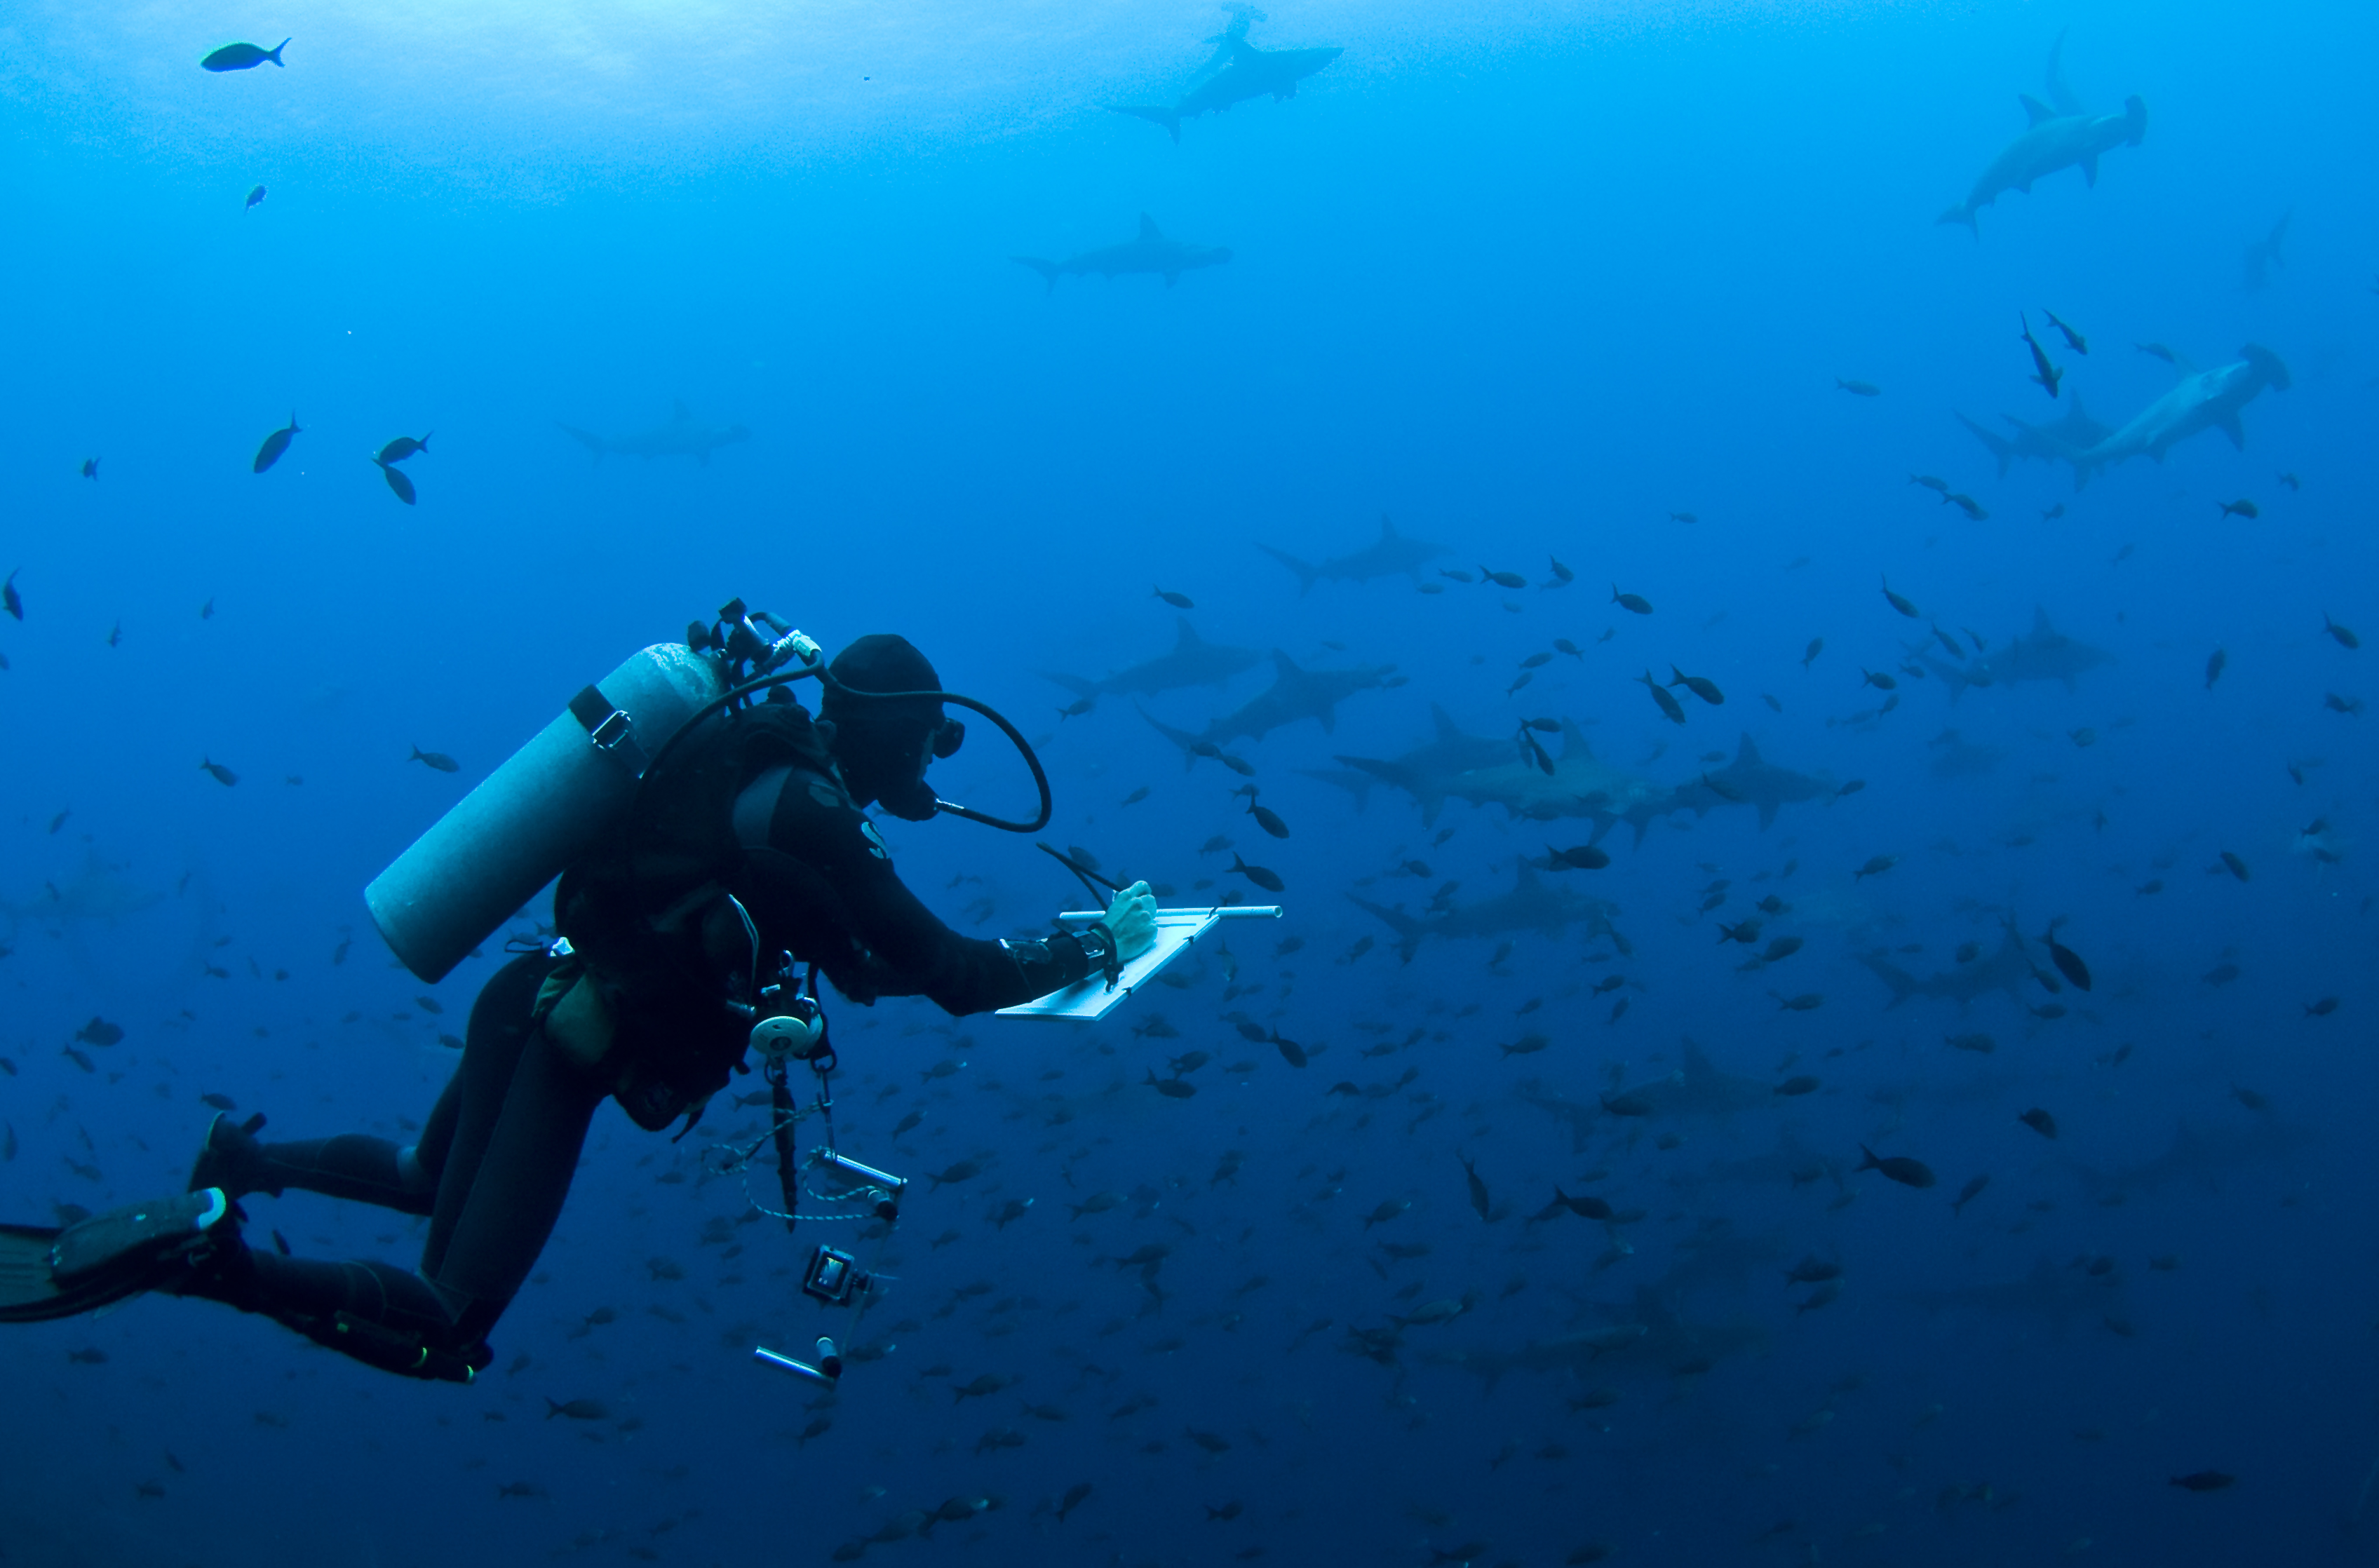 In the past, researchers have conducted shark cencus with dive teams. Now they will use underwater video systems. Photo by Pelayo Salinas| © Charles Darwin Foundation